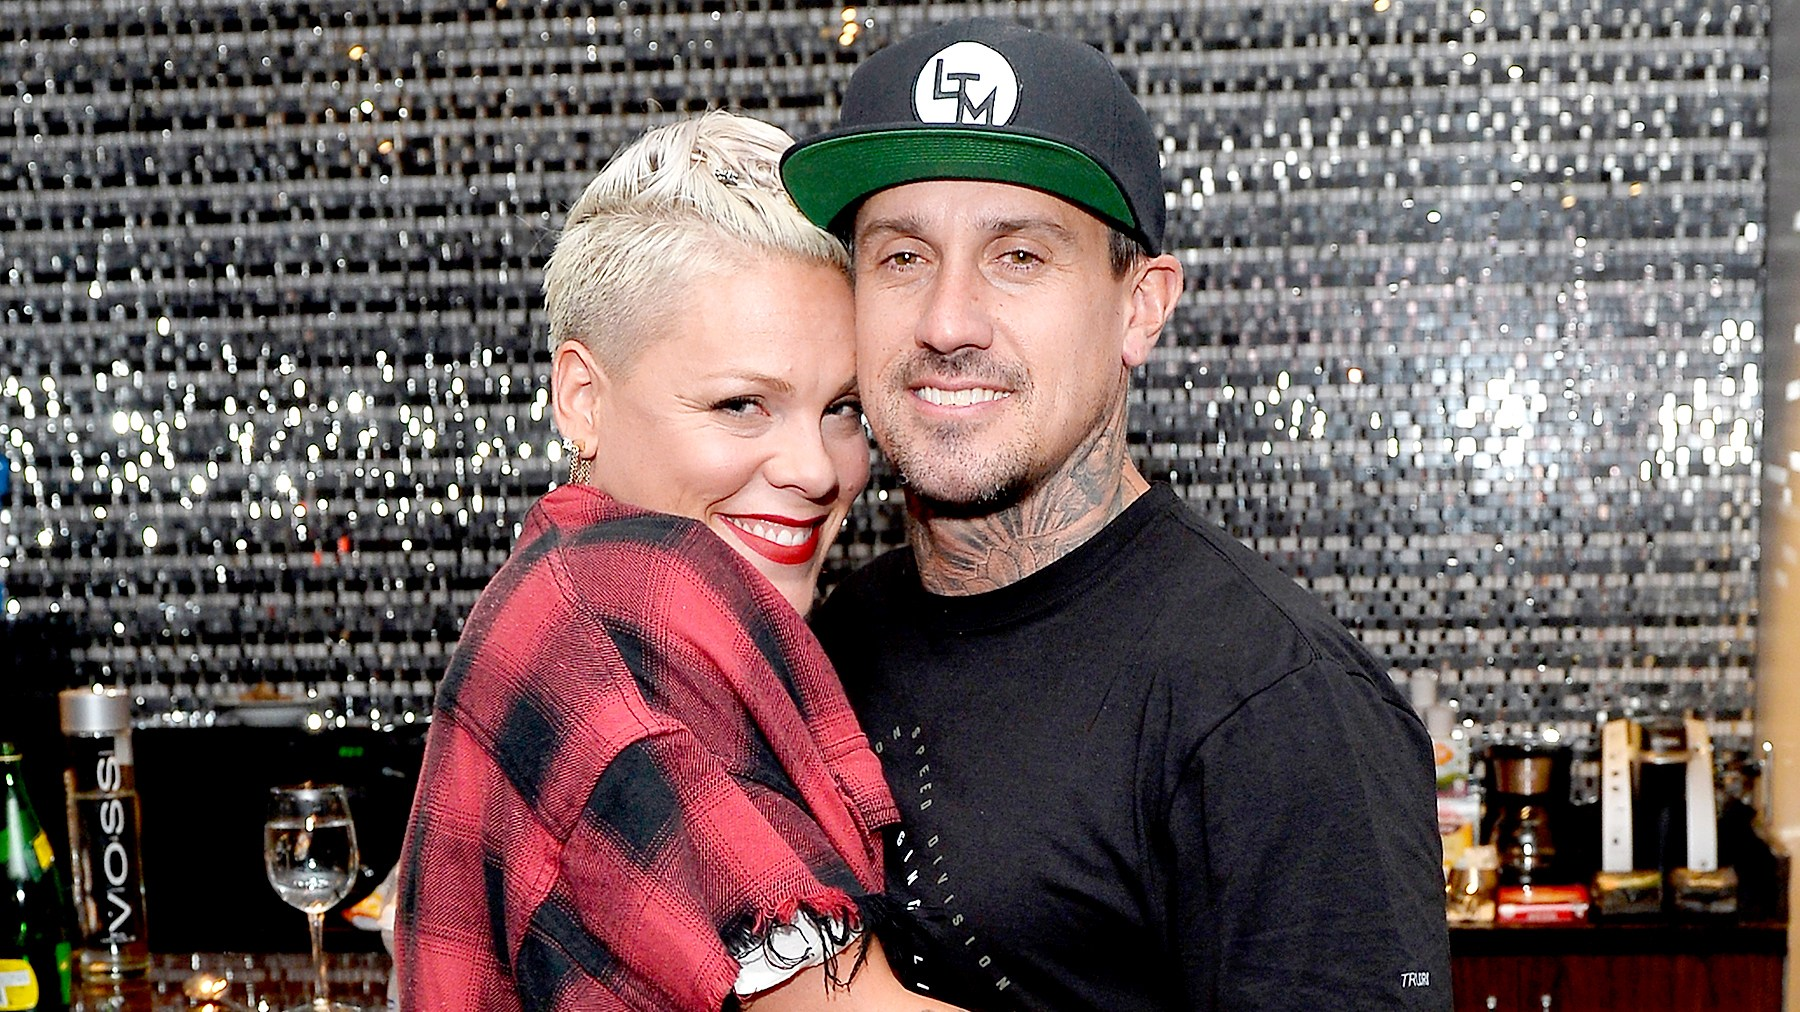 Pink and Carey Hart attend a surprise event in support of Carey Hart's Good Ride Rally benefiting Infinite Hero Foundation at The D Bar, at the D Las Vegas on October 5, 2017 in Las Vegas, Nevada.